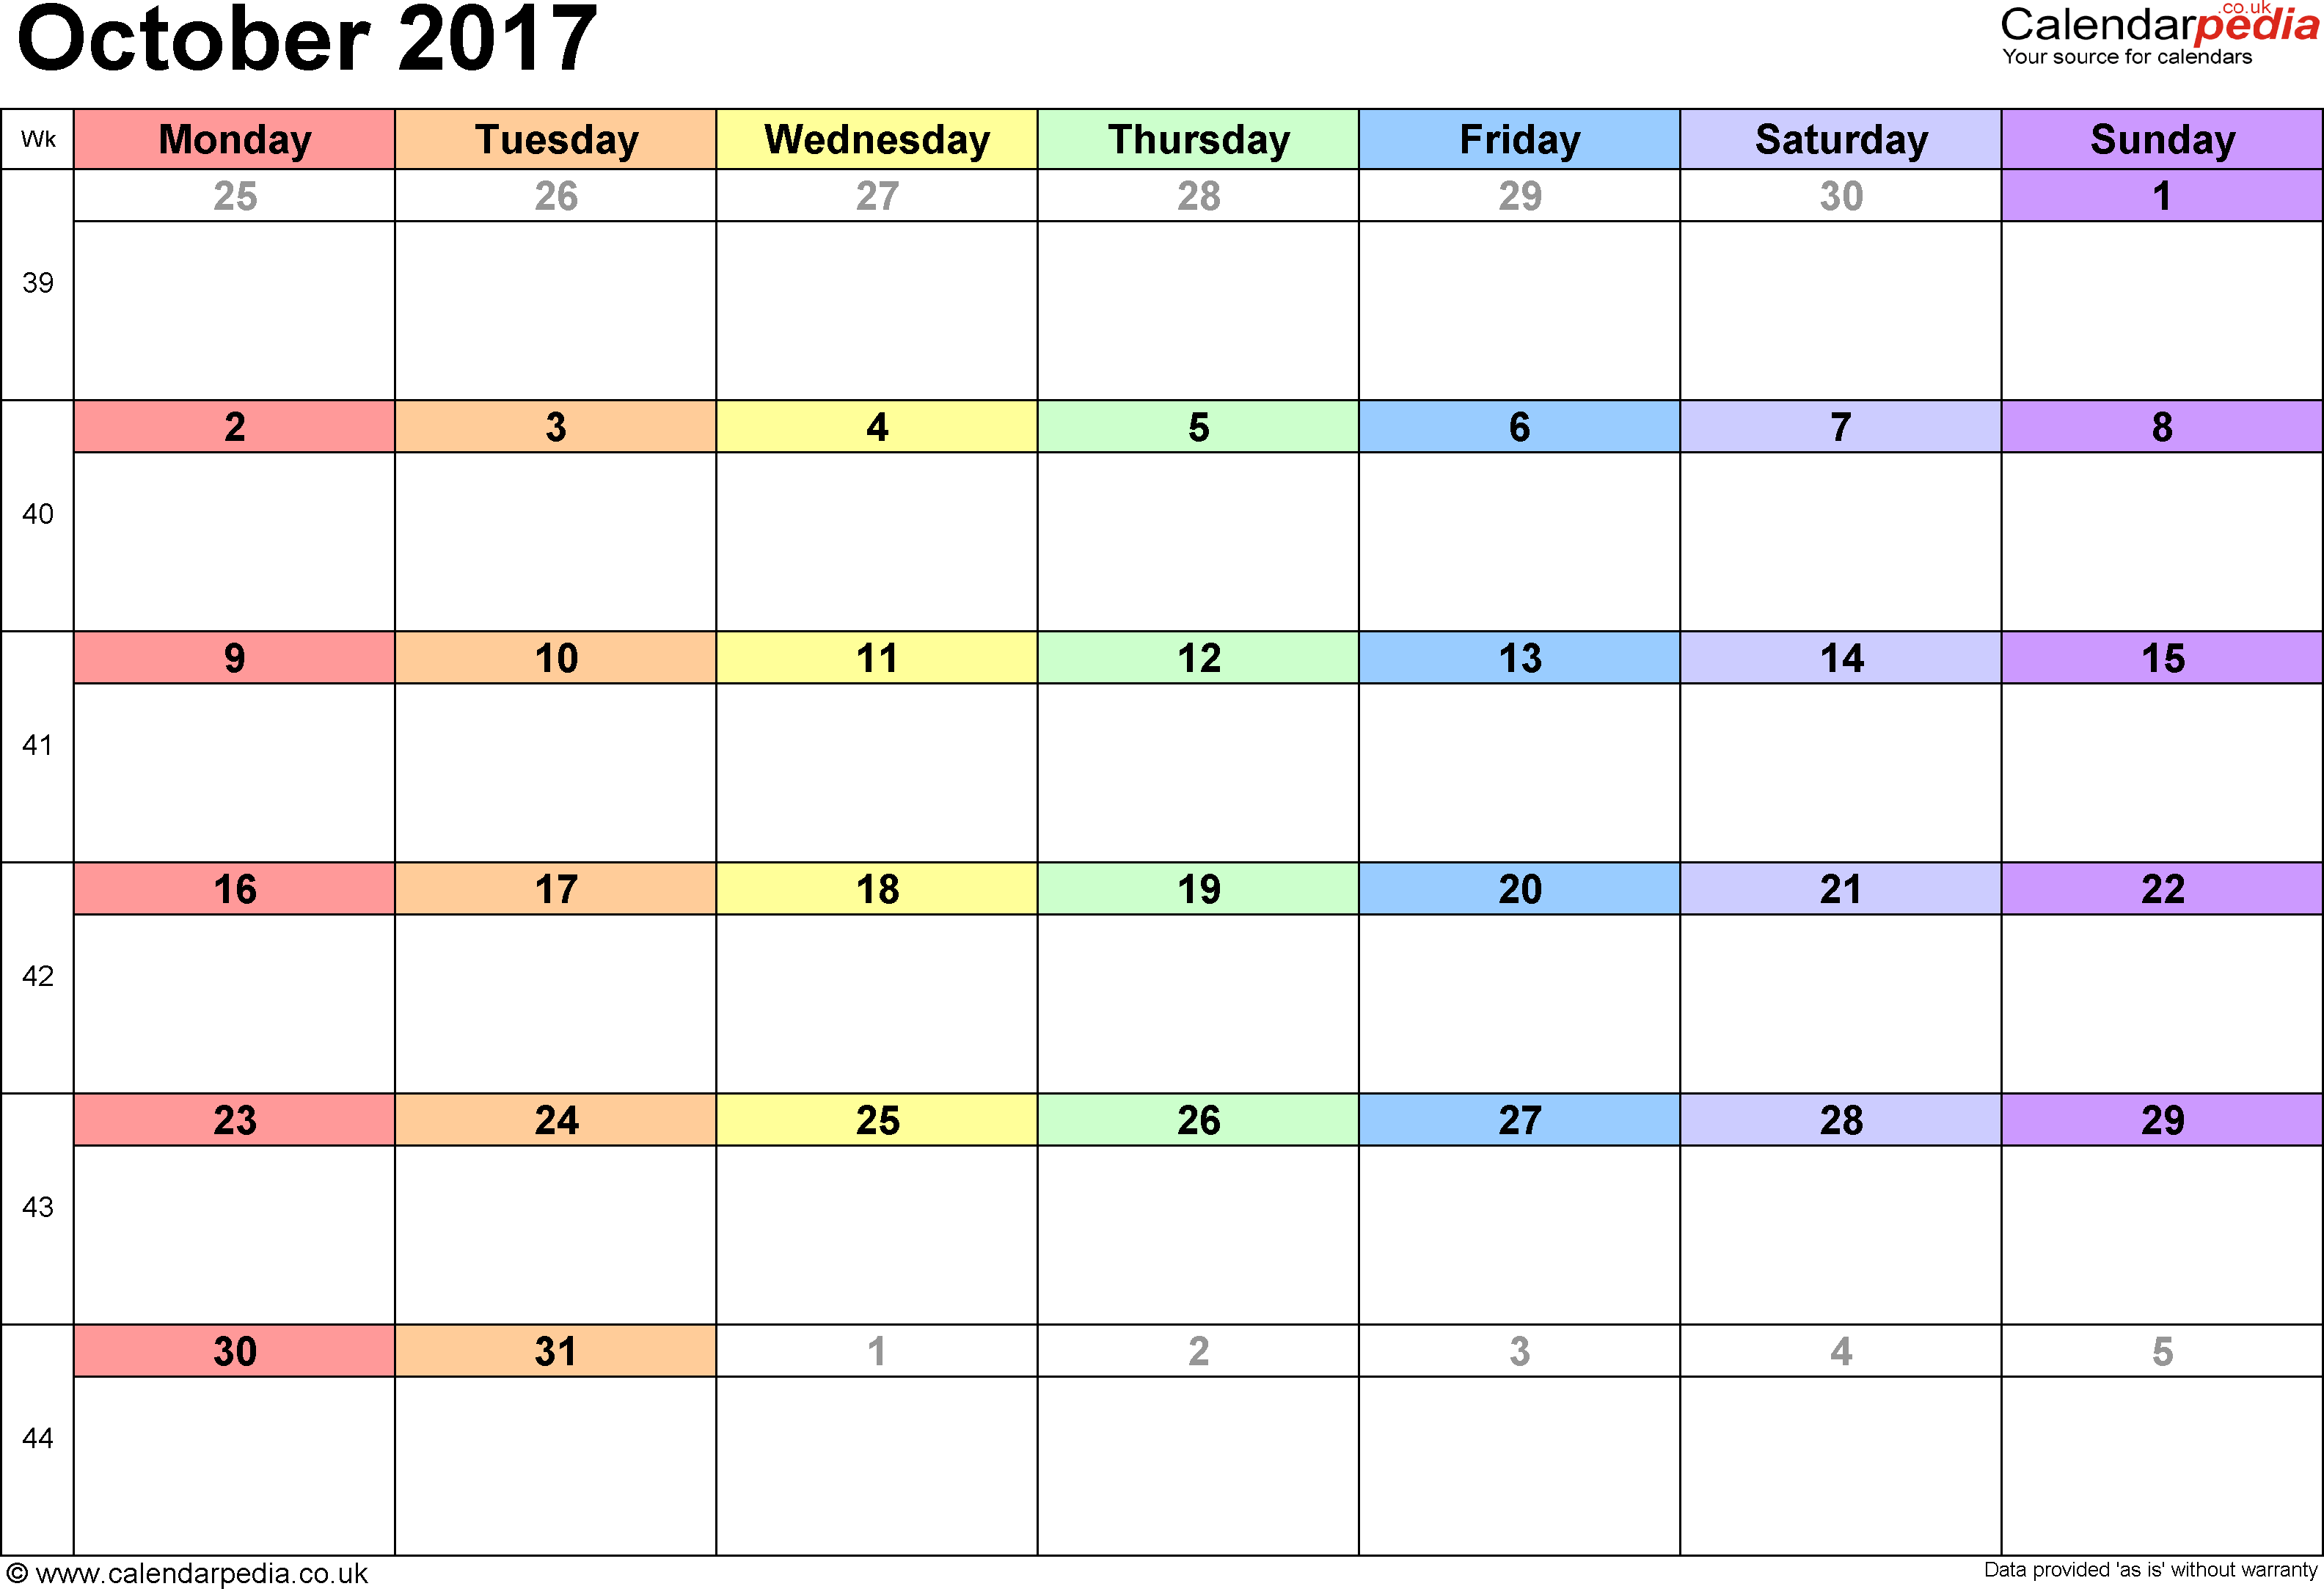 Calendar of Events - October 2017 - Brown Bear Software